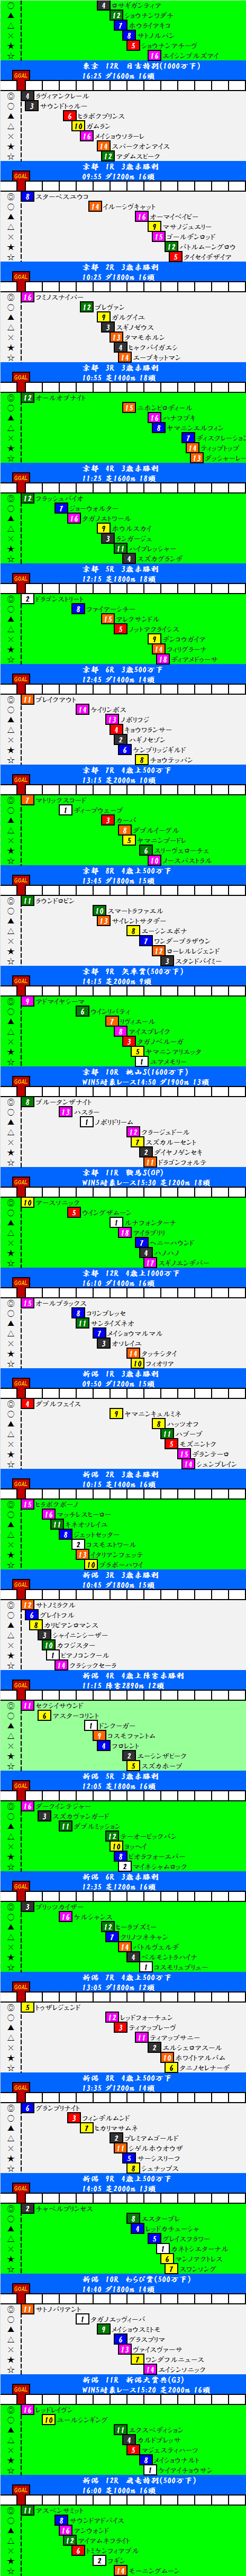 201405112.png